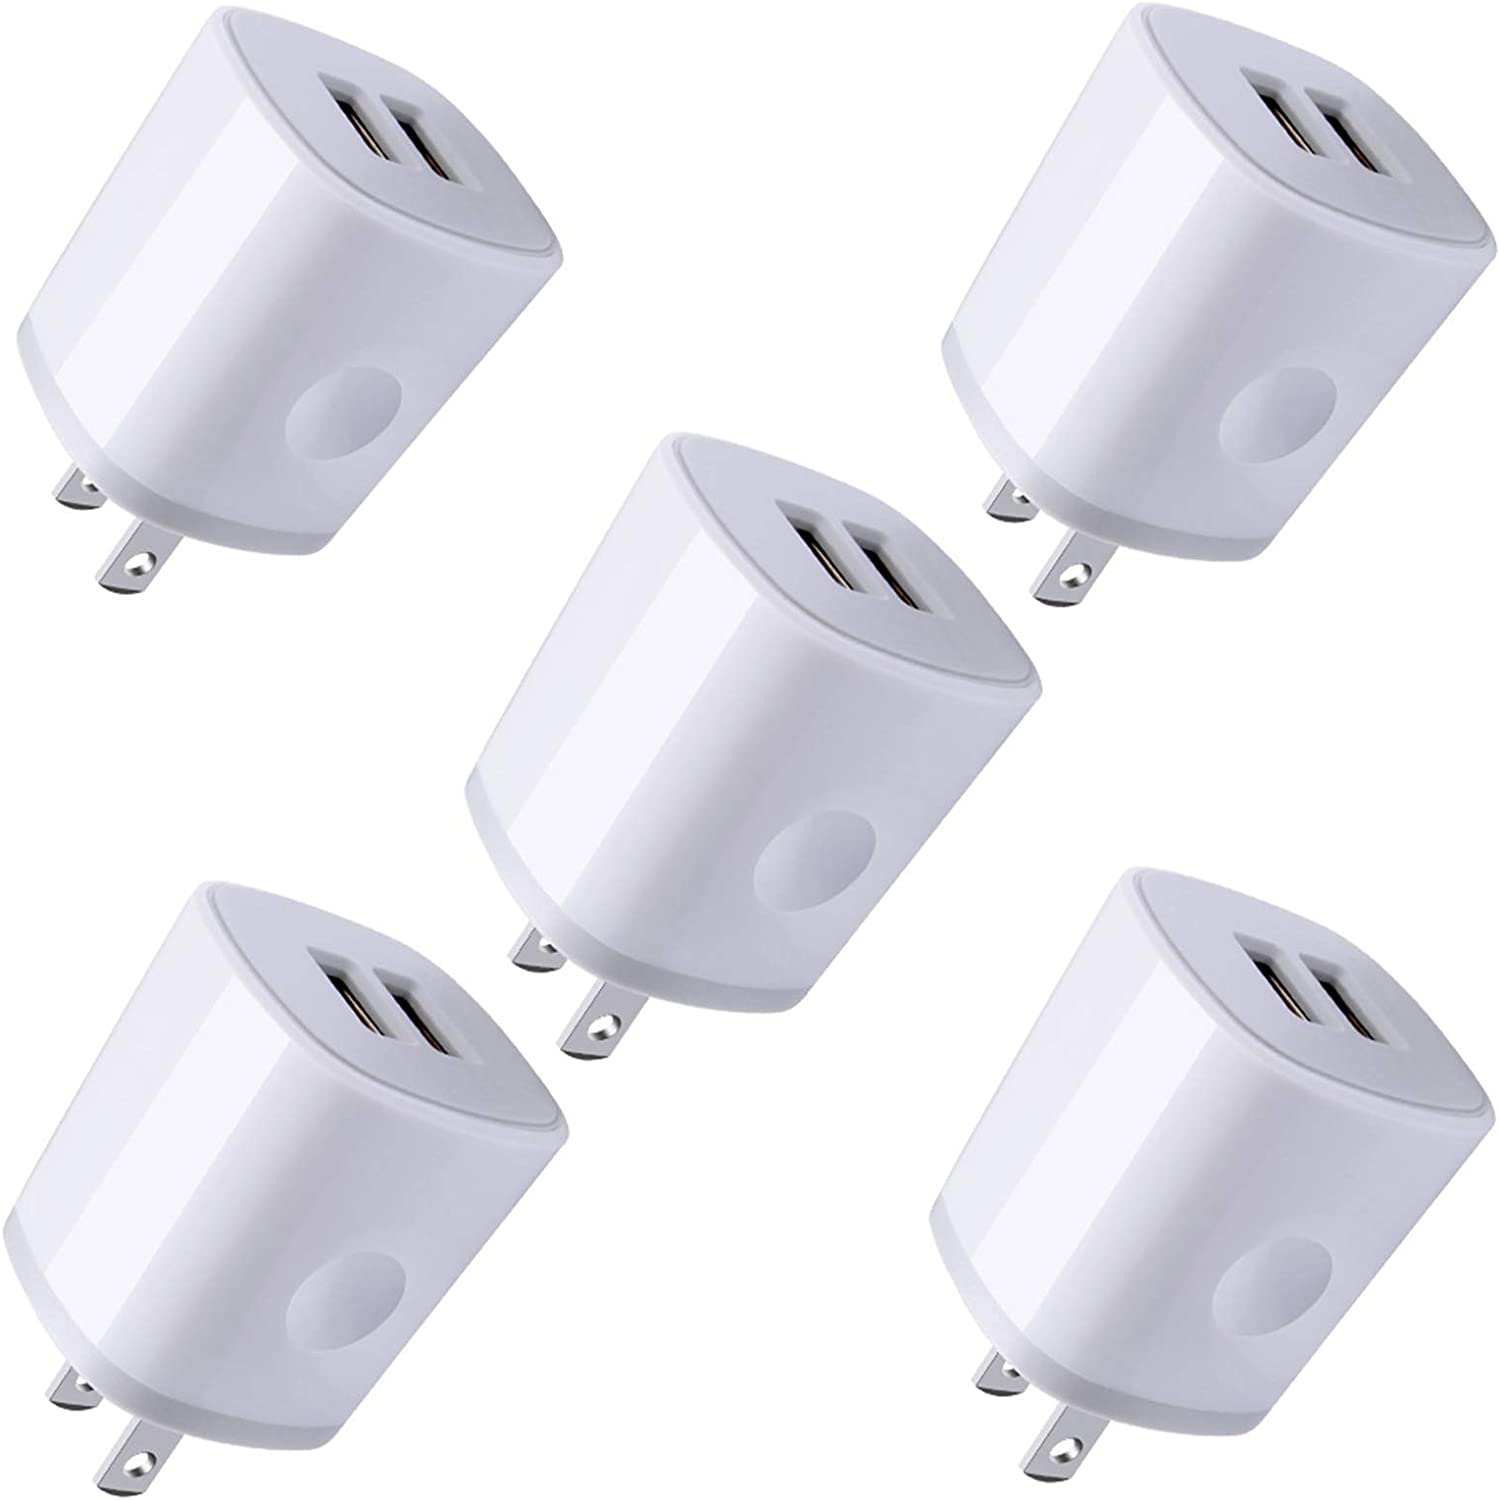 USB Wall Plug, Charger Block, 5Pack AndHot 2.1Amp 2-Port USB Wall Charger Home Travel Fast AC Power Adapter Compatible with iPhone 11 Pro/XS/XR/X/8/7/6 Plus, iPad, Samsung, Android, Kindle, LG, Moto